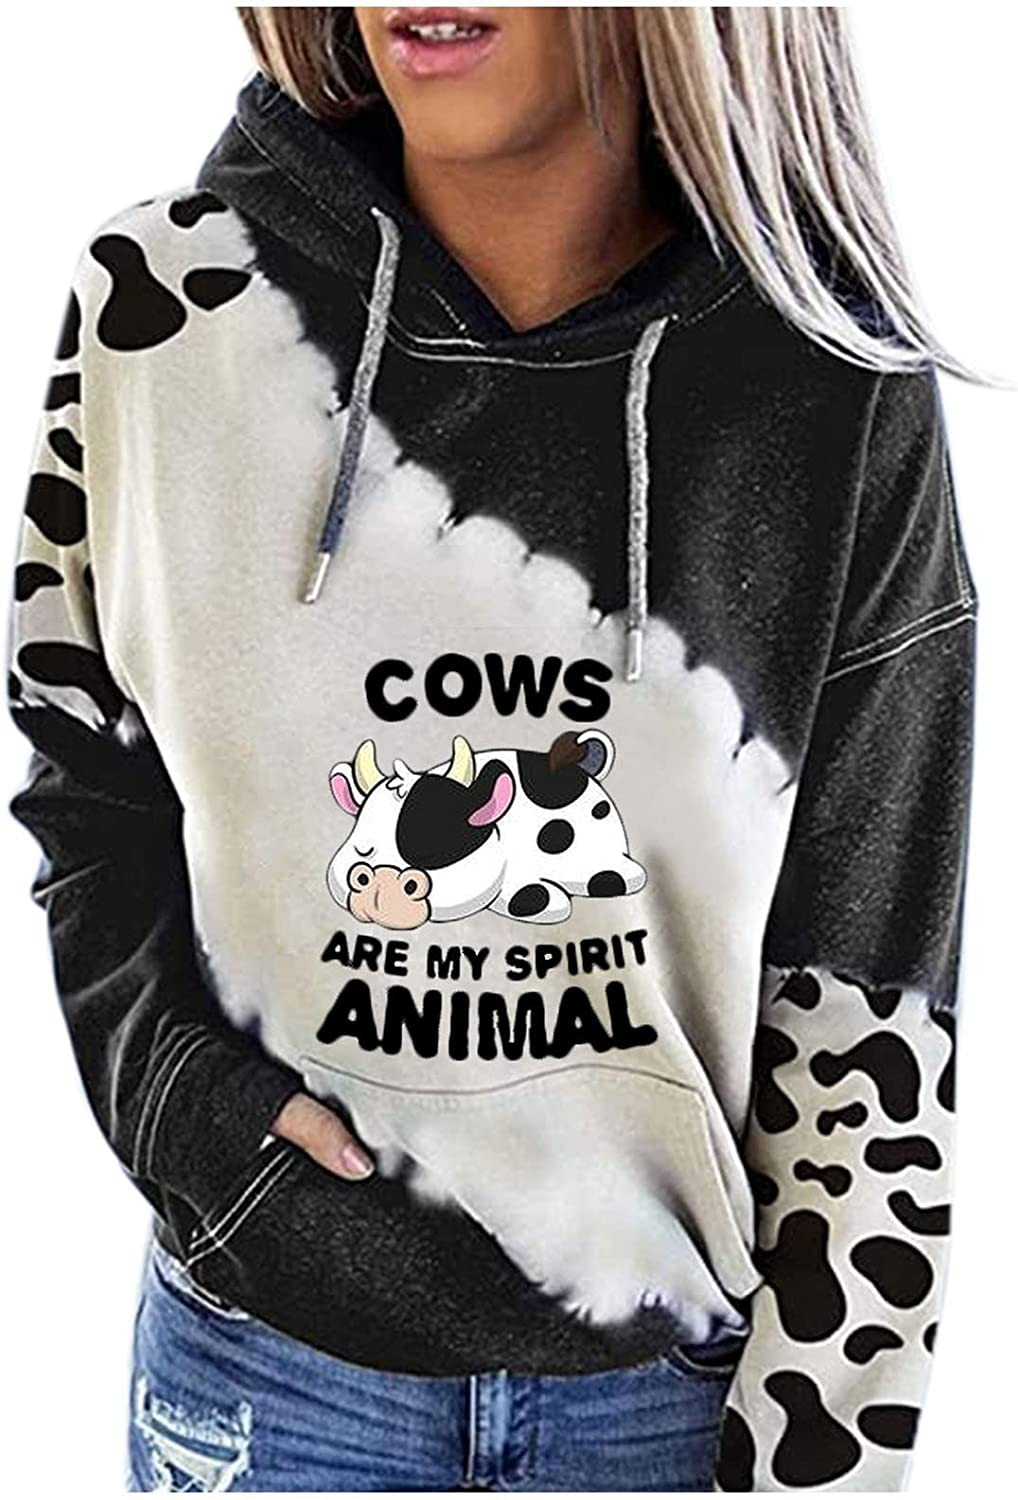 Women's Hoodies Sweater Cute Cow Printed Patchwork Color Block Long-Sleeved Drawstring Casual Tops Shirts